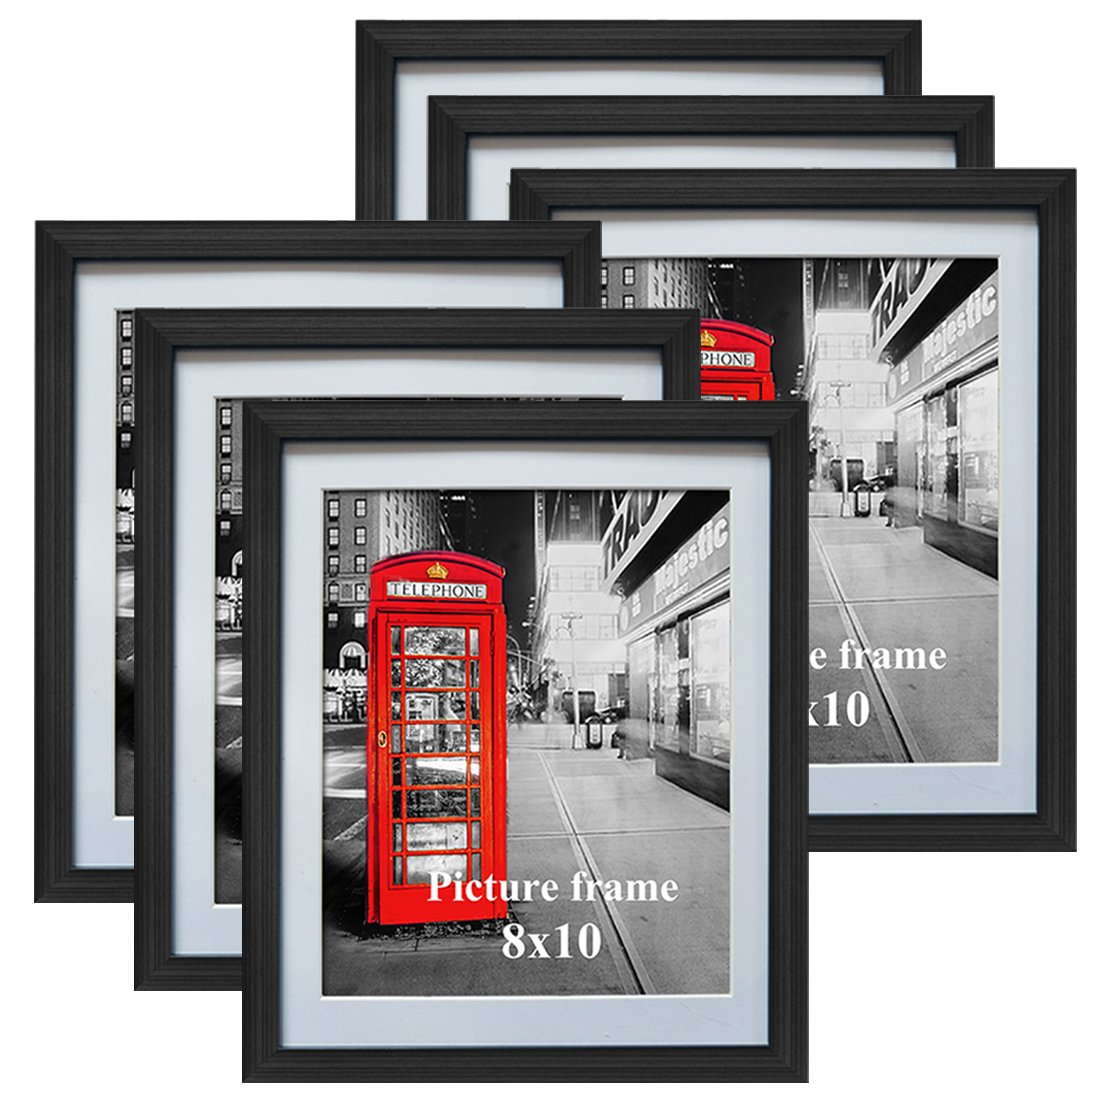 8x10 Black Picture Frames with Mat for Wall or Table Top Decoration, Set of 6 by Amazing Roo